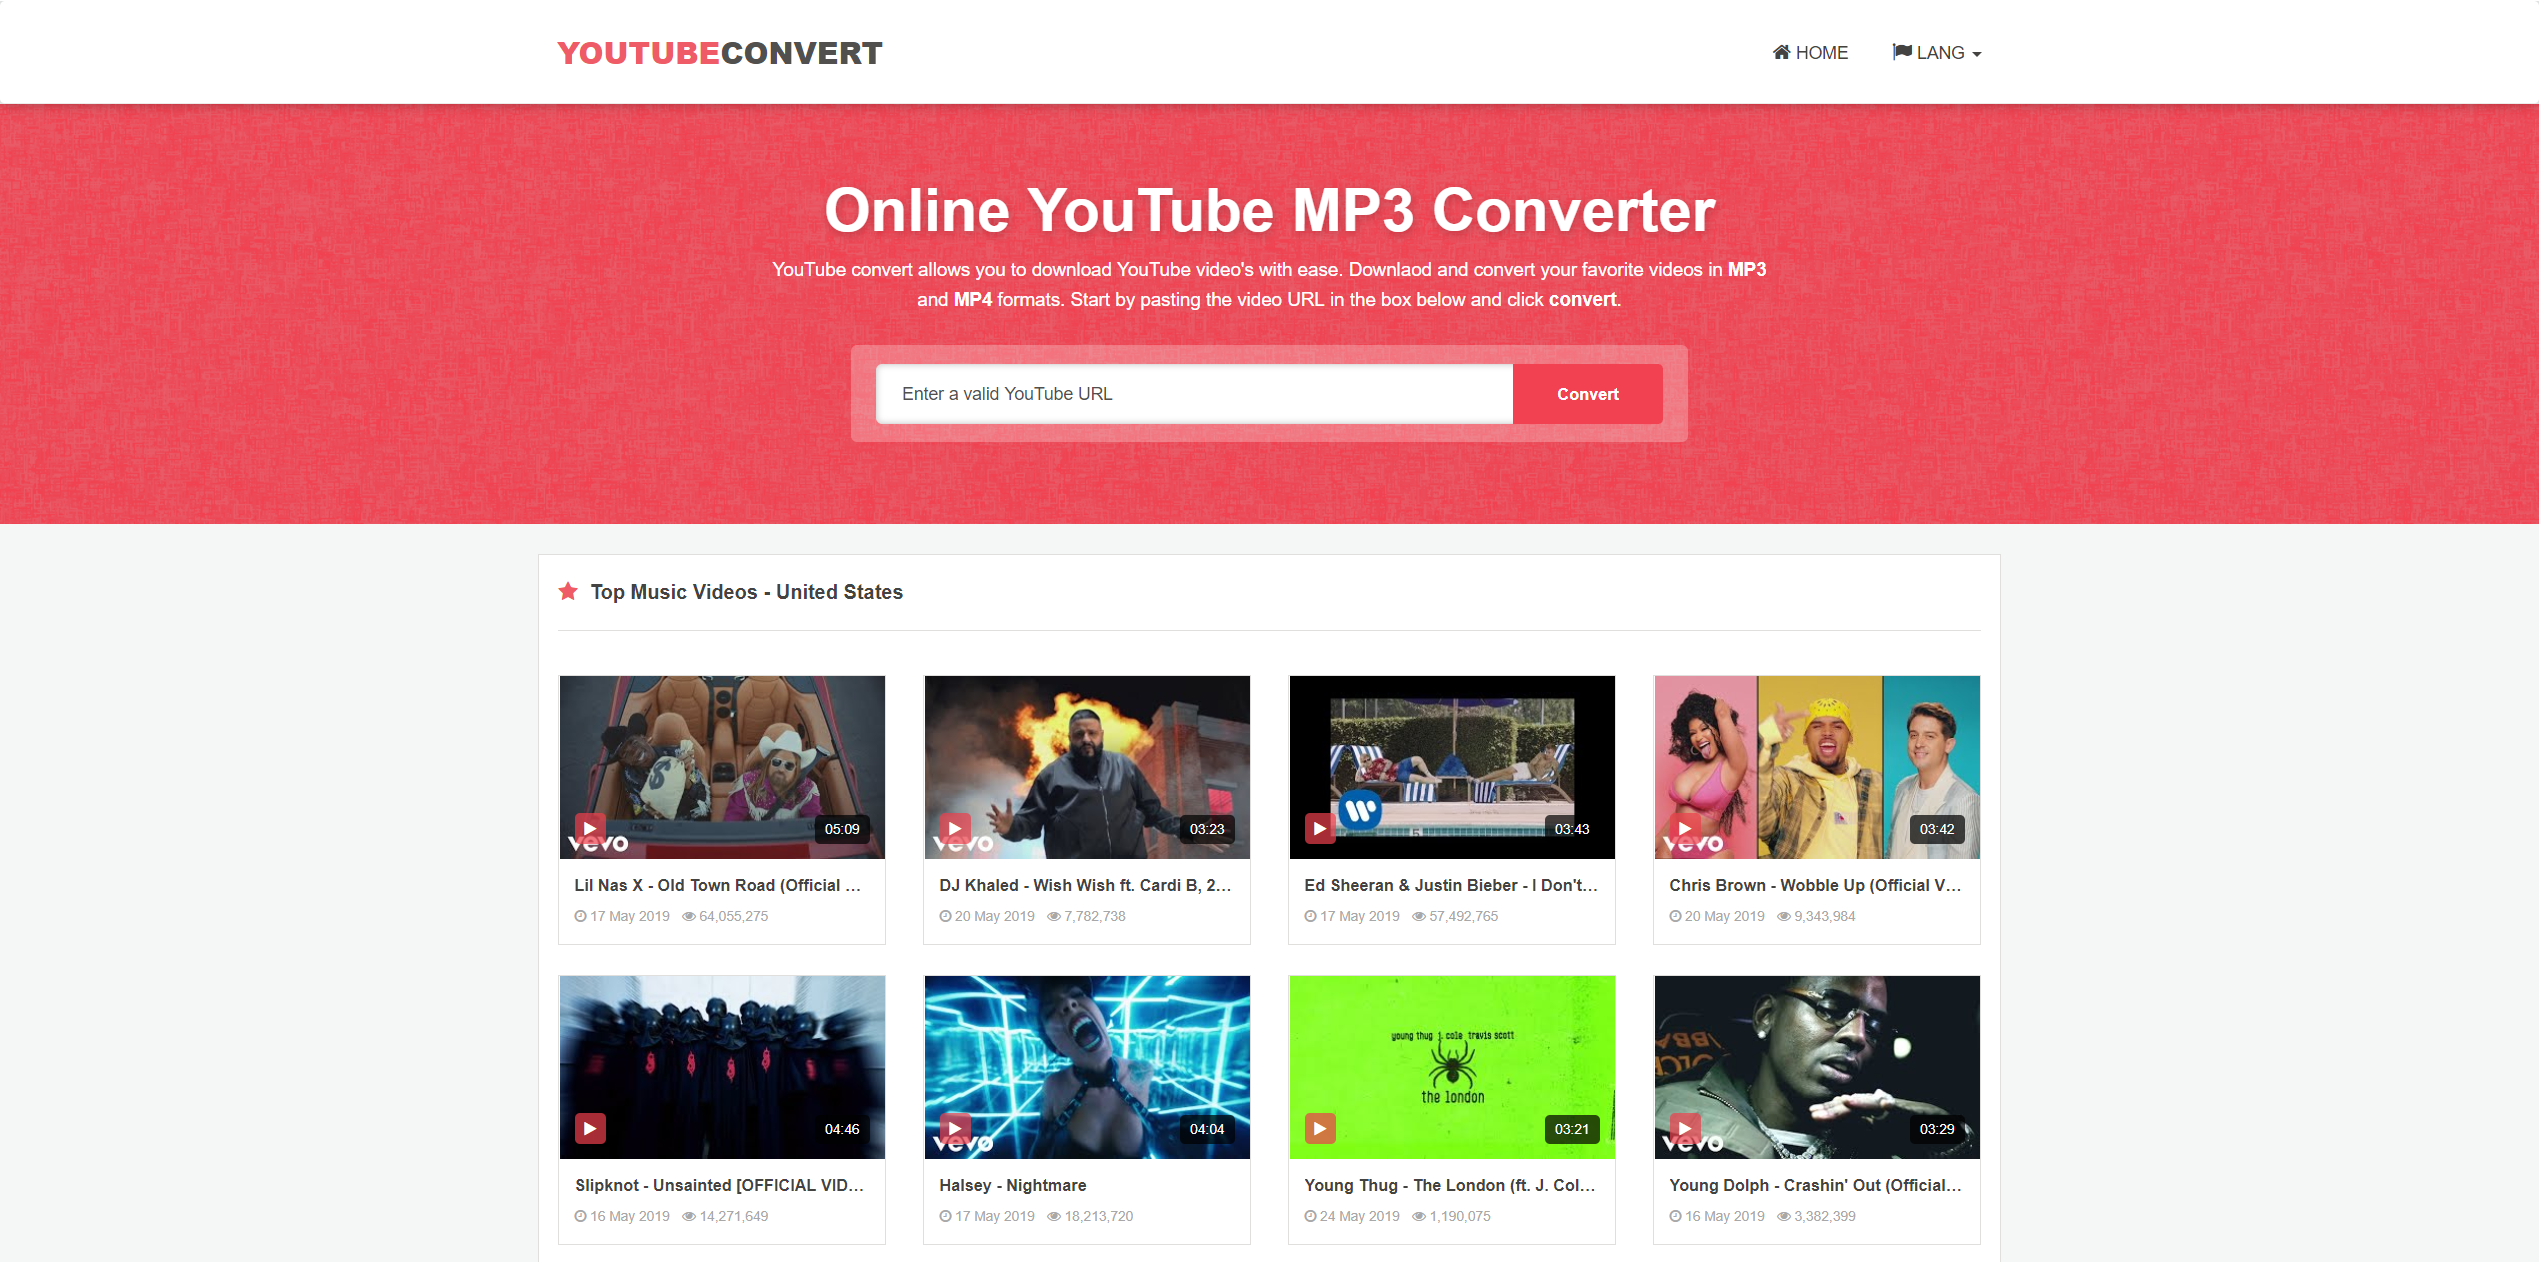 youtubeconvert.cc